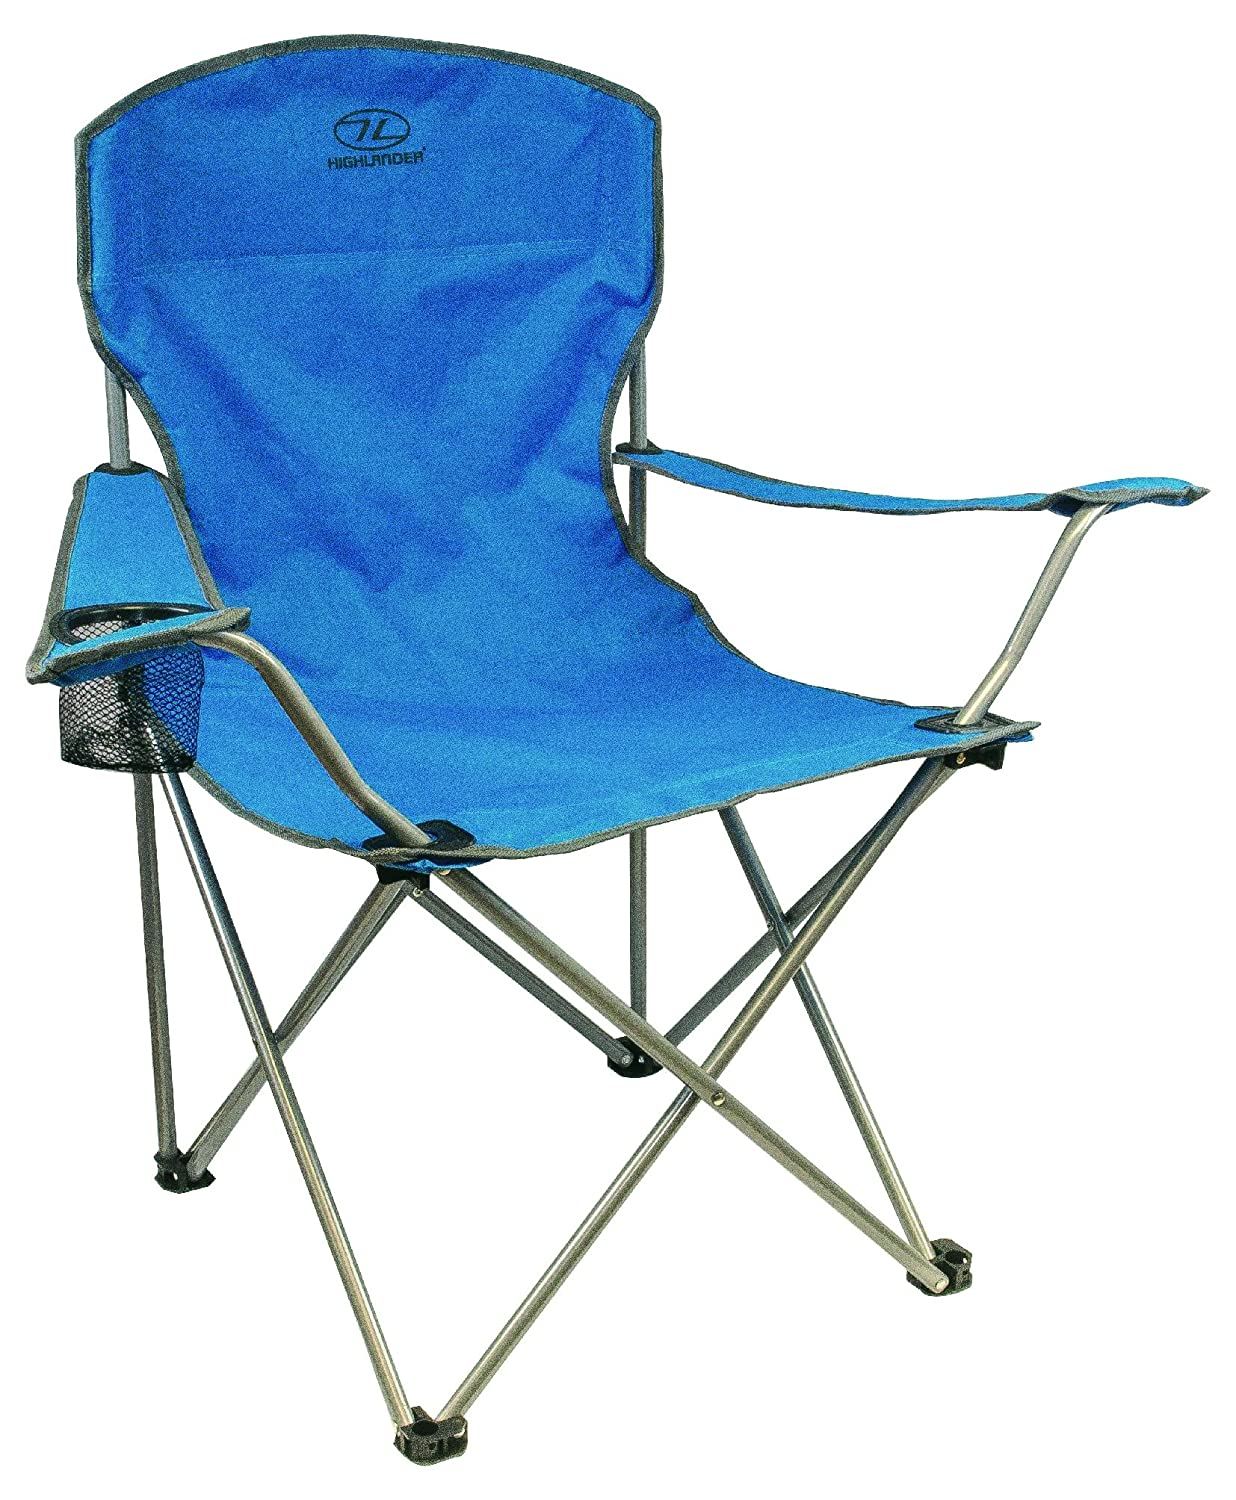 Highlander Folding Camp Chair _ Lightweight, Popular And Highly Rated Outdoor  Chair _ Perfect For Camping, Festivals, Garden, Caravan Trips, Fishing, ...